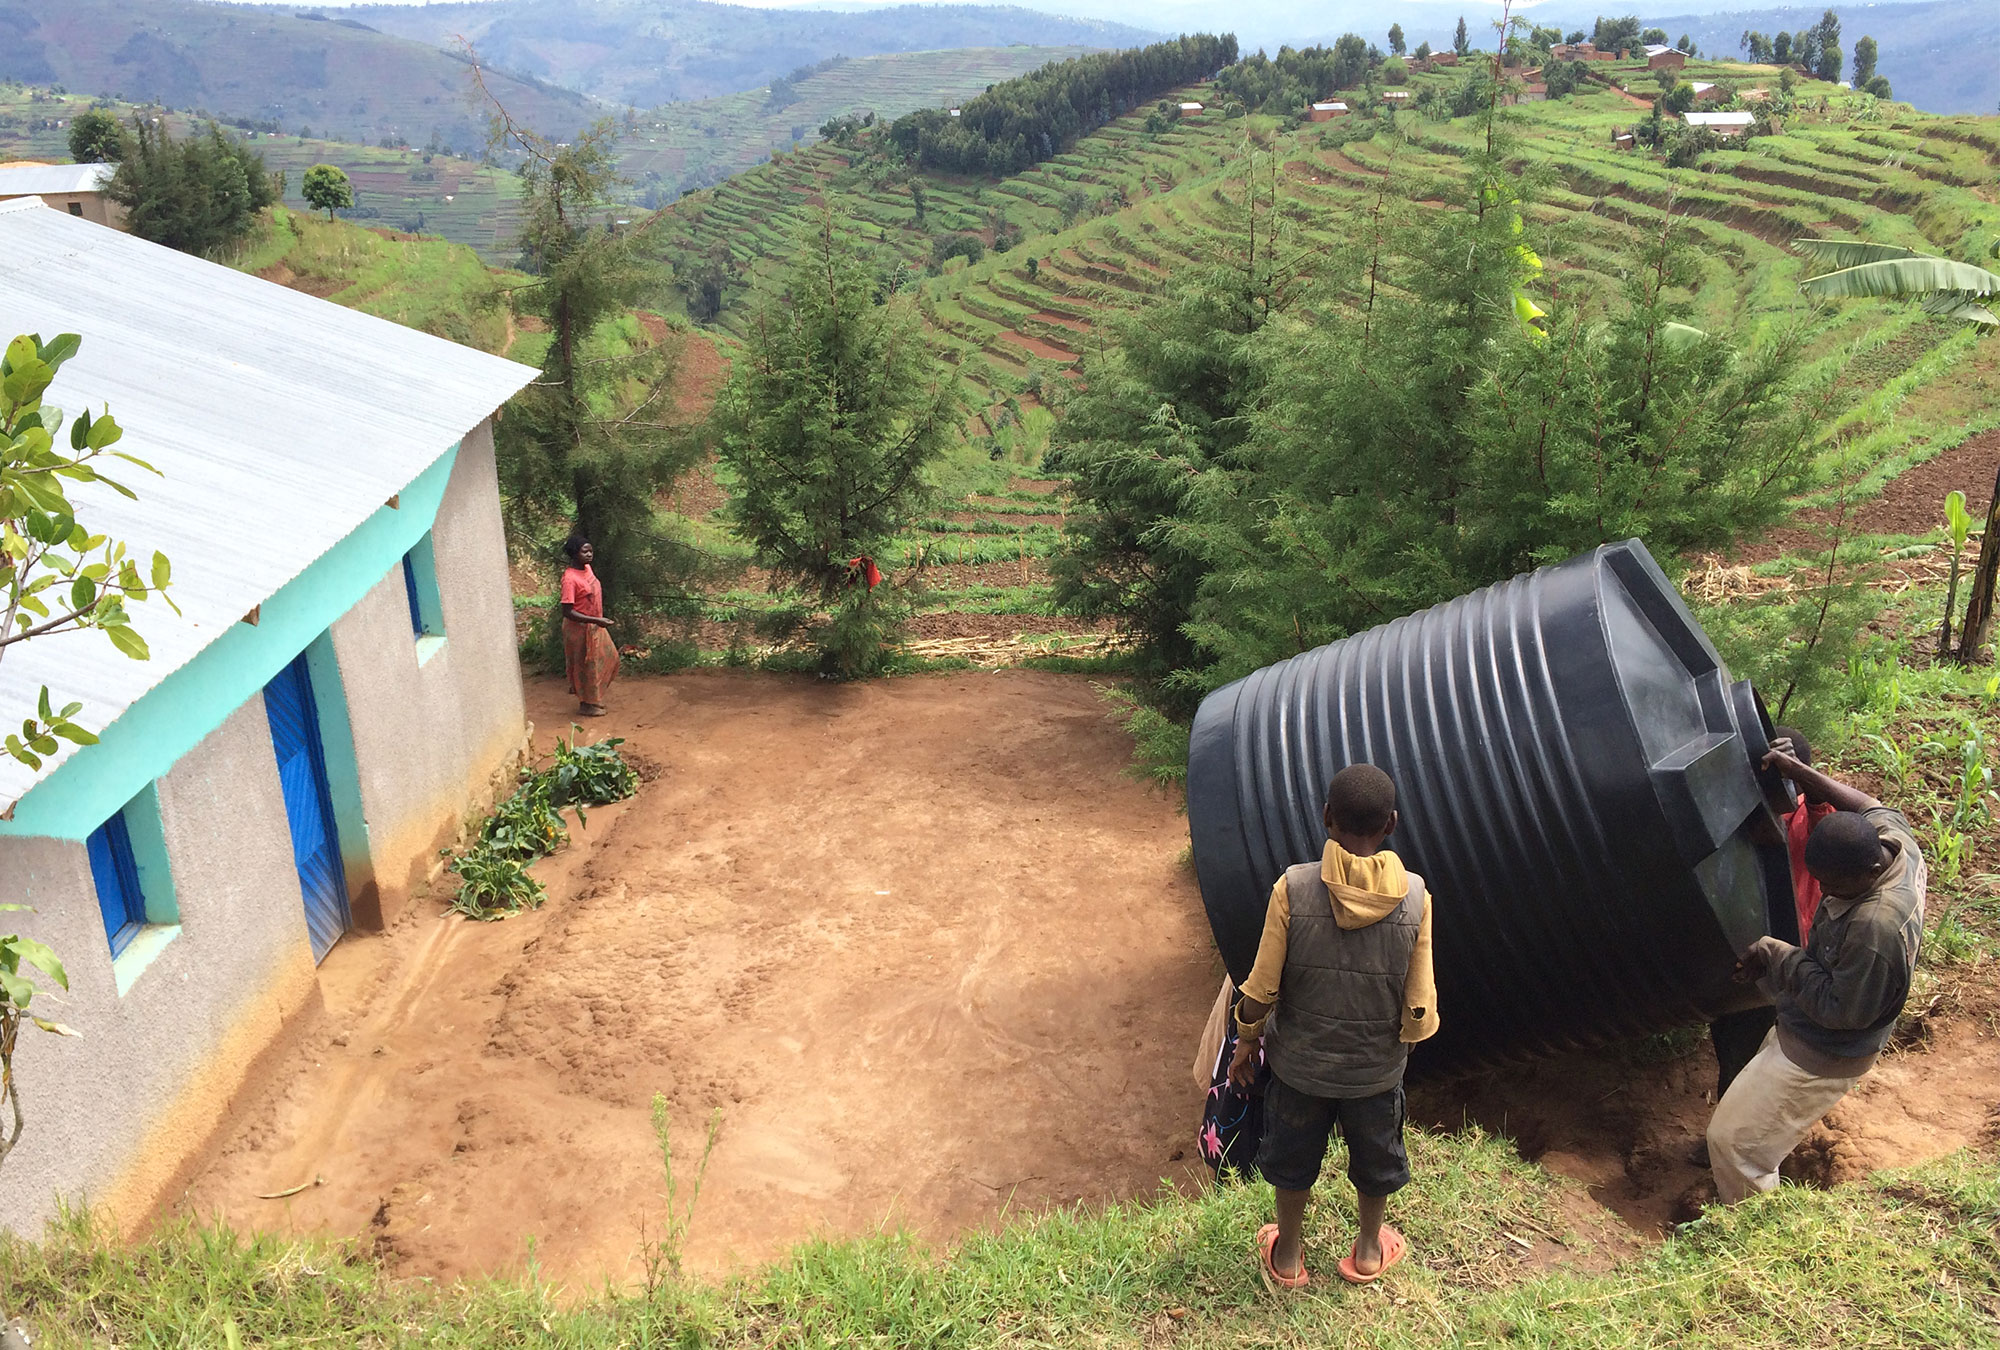 People carry large water tank up a hill in terraced agricultural landscape